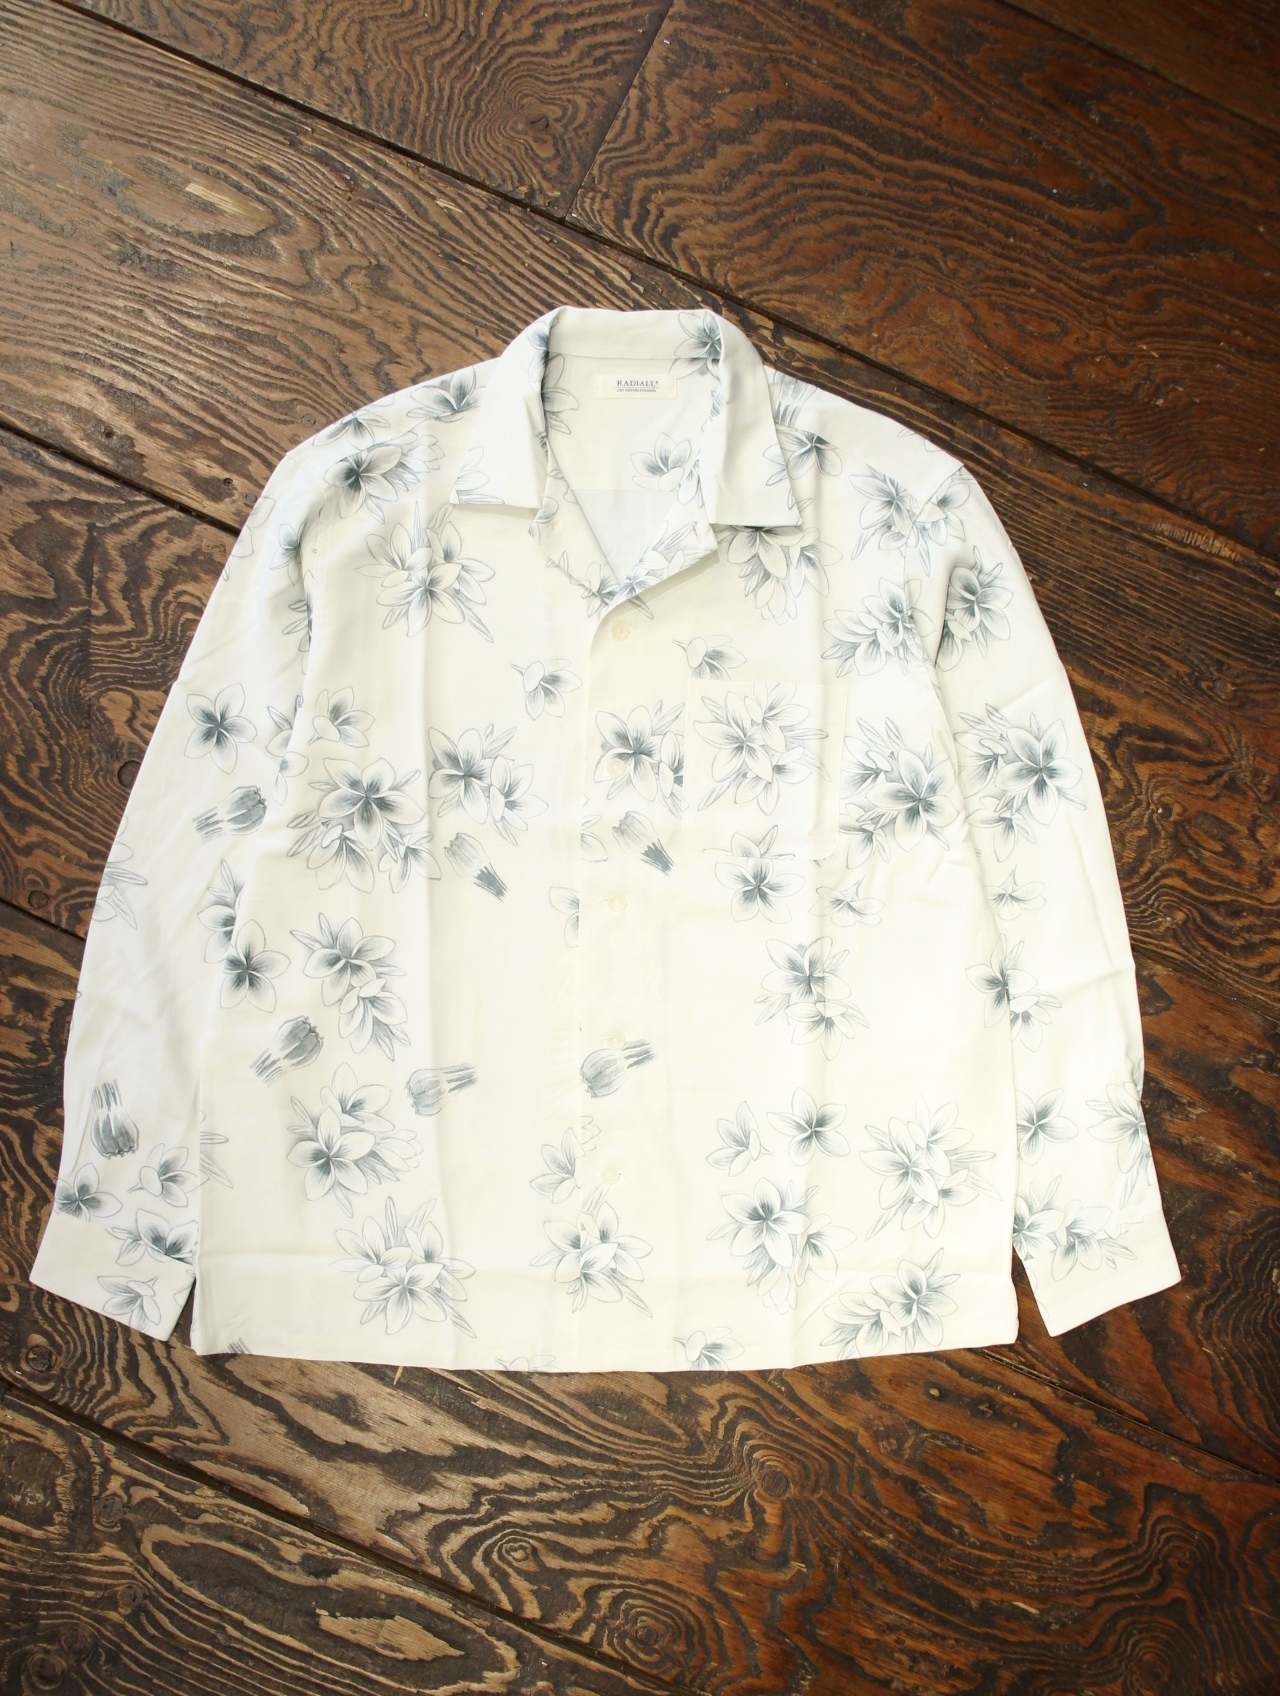 RADIALL 「REQUESTS MUSIC - OPEN COLLARED SHIRT L/S」  オープンカラーアロハシャツ